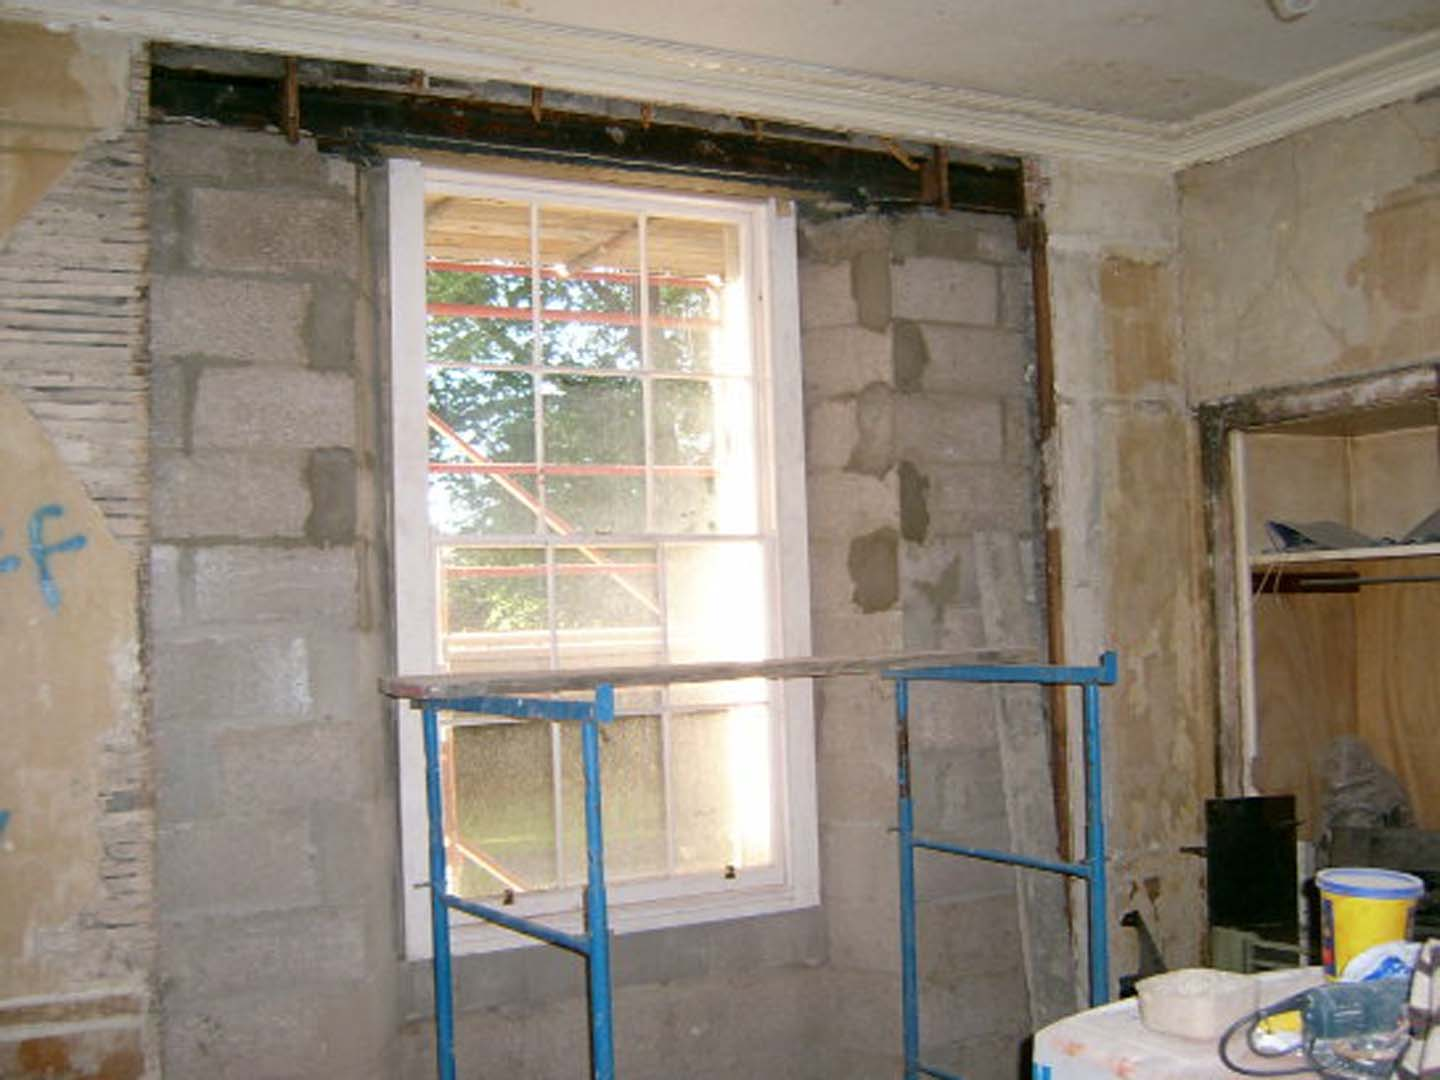 Georgian House image of window being worked on during restoration